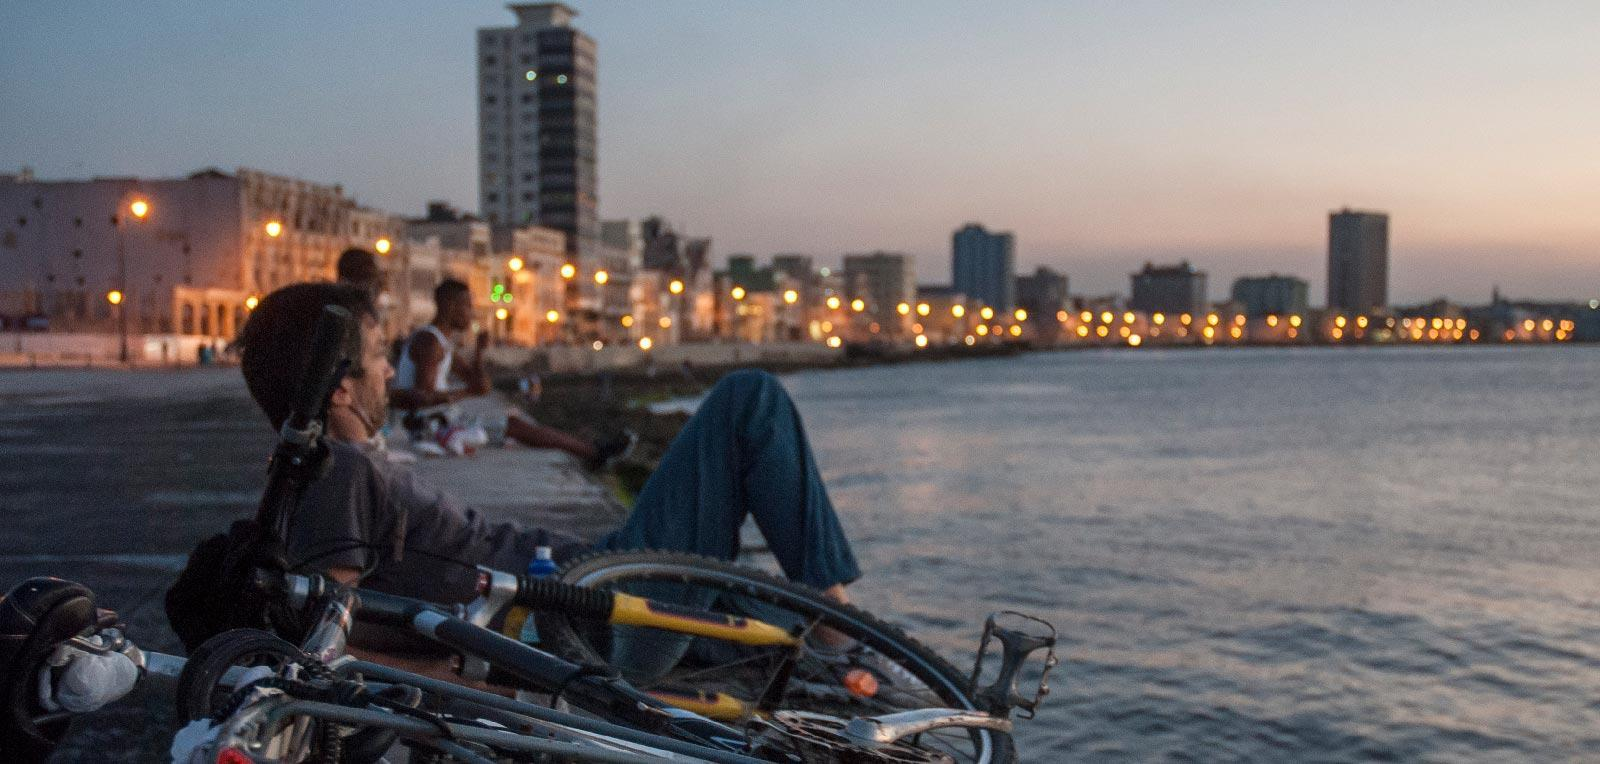 Havana's Malecón: More than a place for a stroll